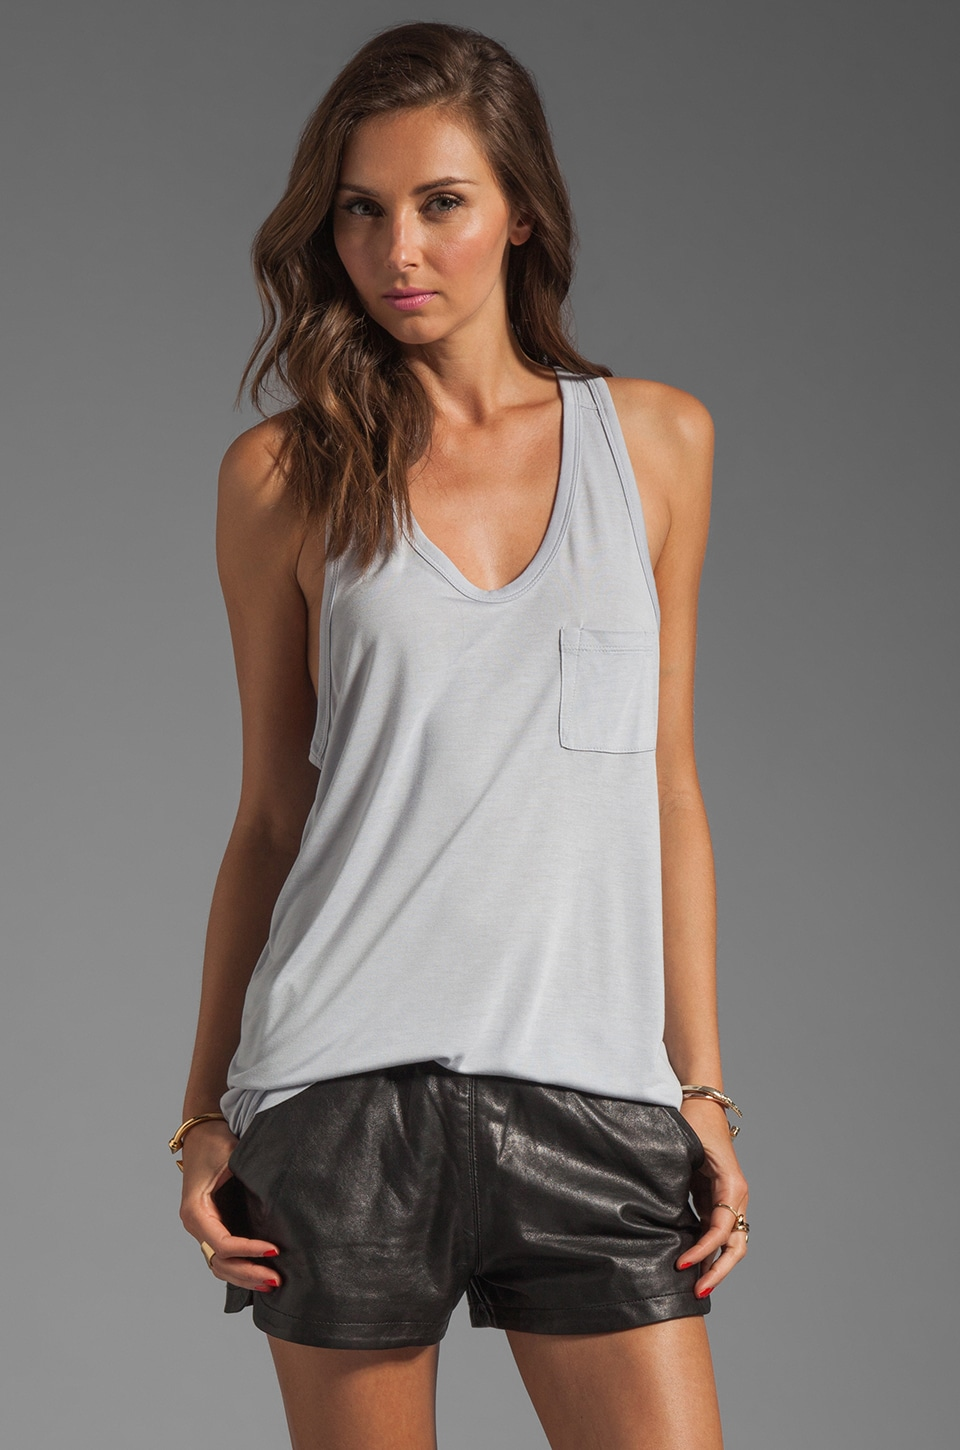 T by Alexander Wang Classic Tank with Pocket in Lavender